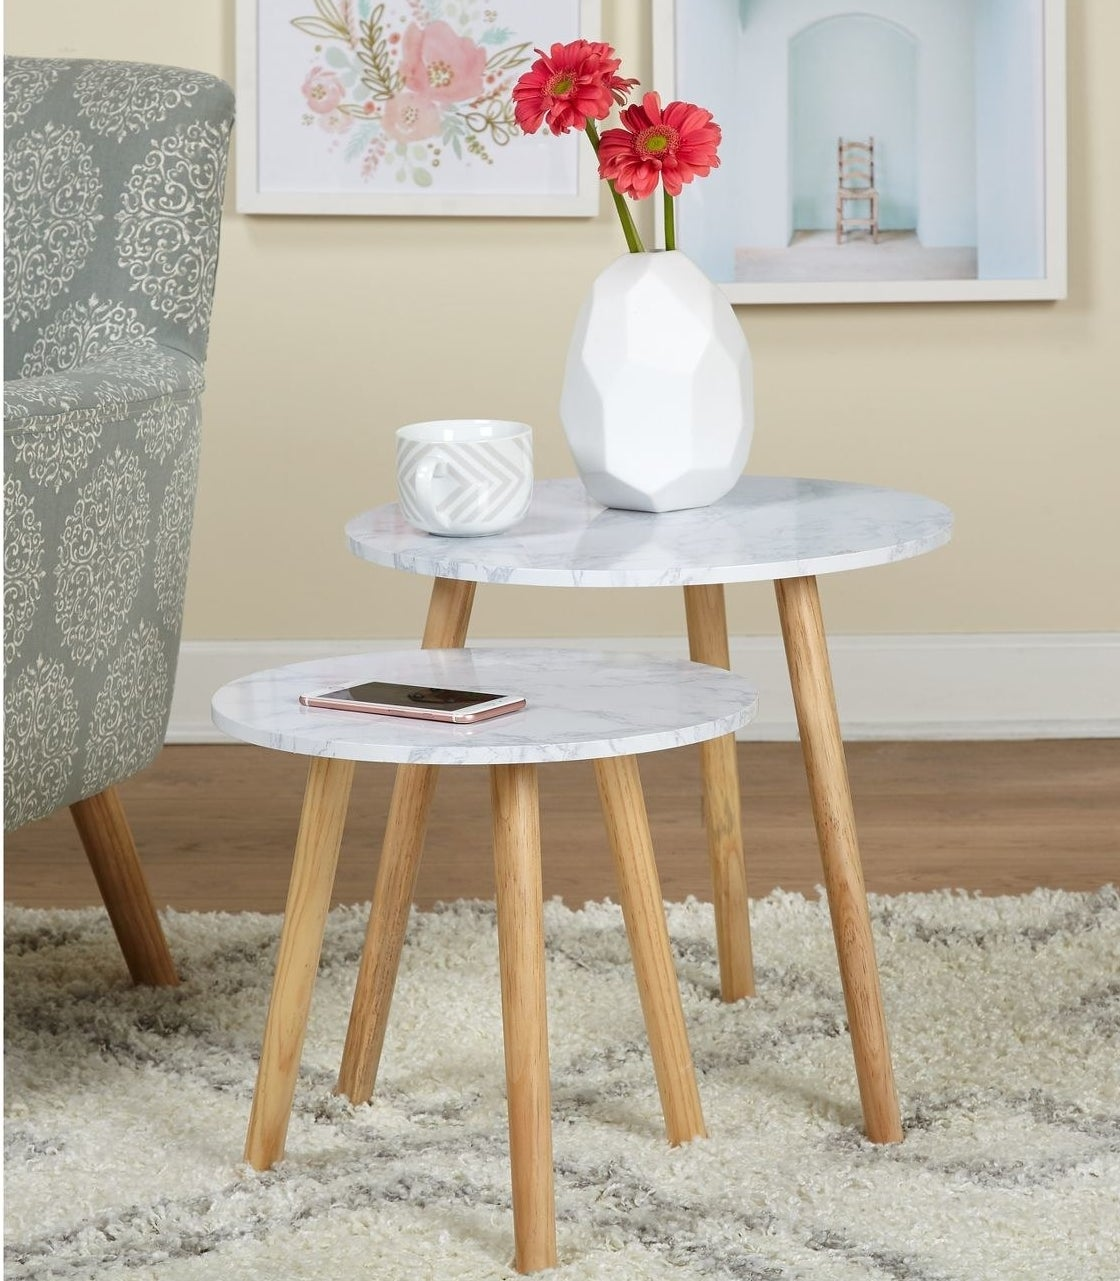 The two tables, both of which have a light gray marble-look rounded top and four wood legs, and one of which is shorter than the other